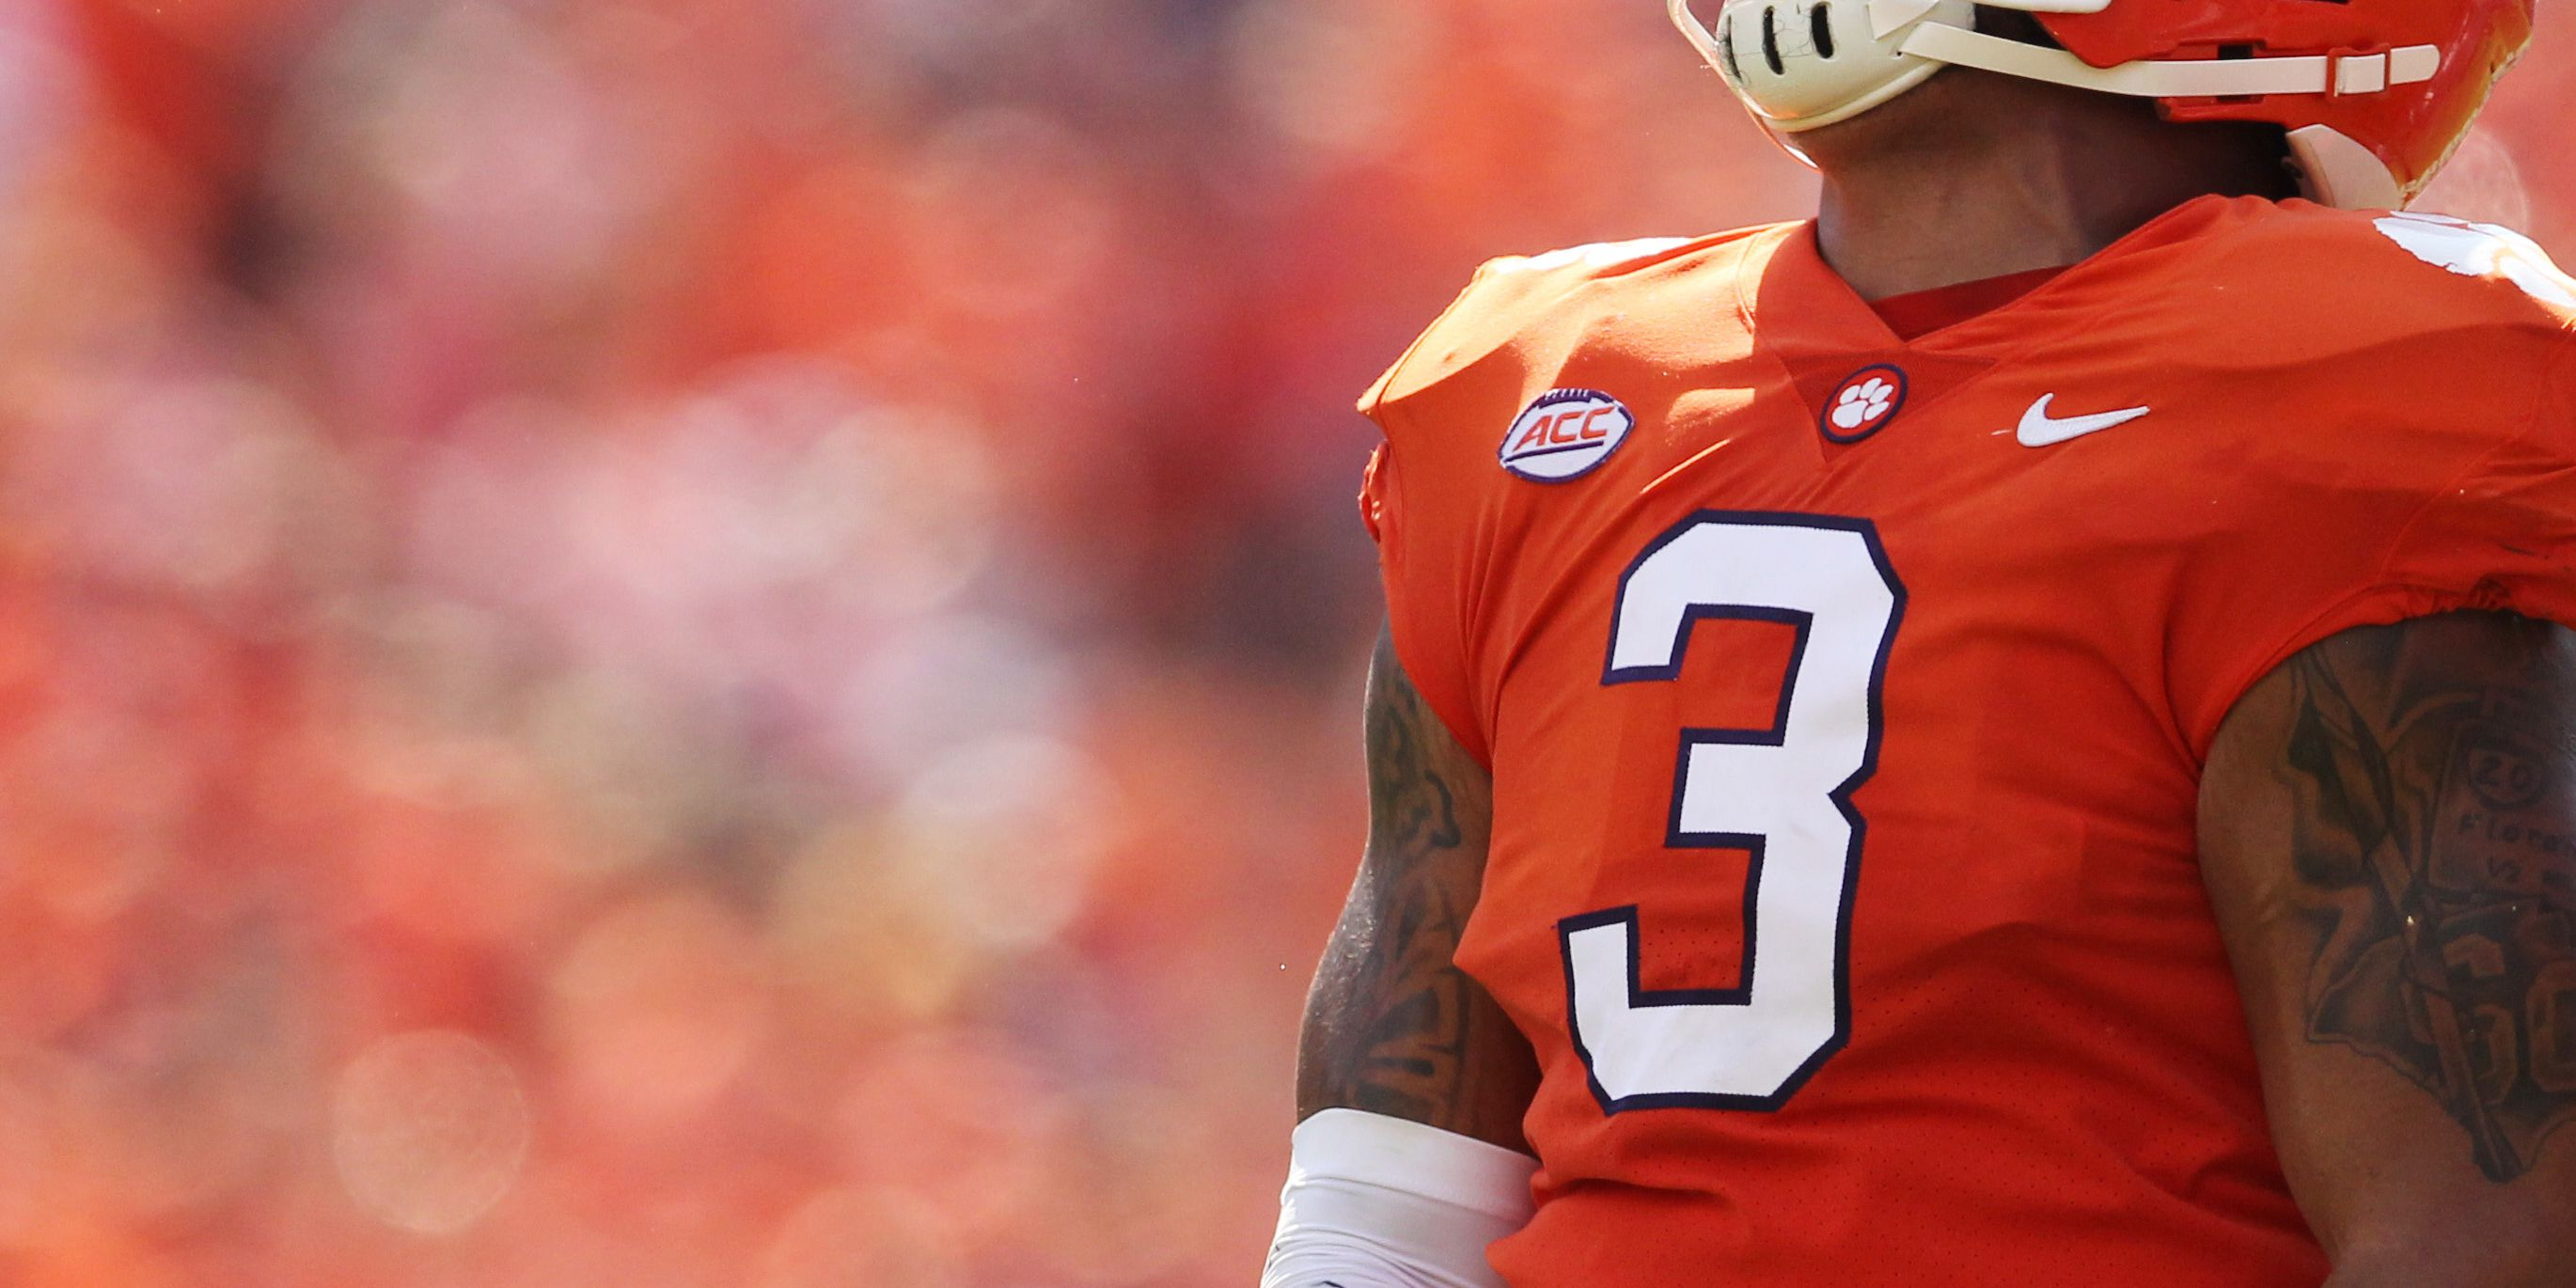 Clemson DE and former Wilson Tiger Xavier Thomas to redshirt in 2020 due to COVID-19